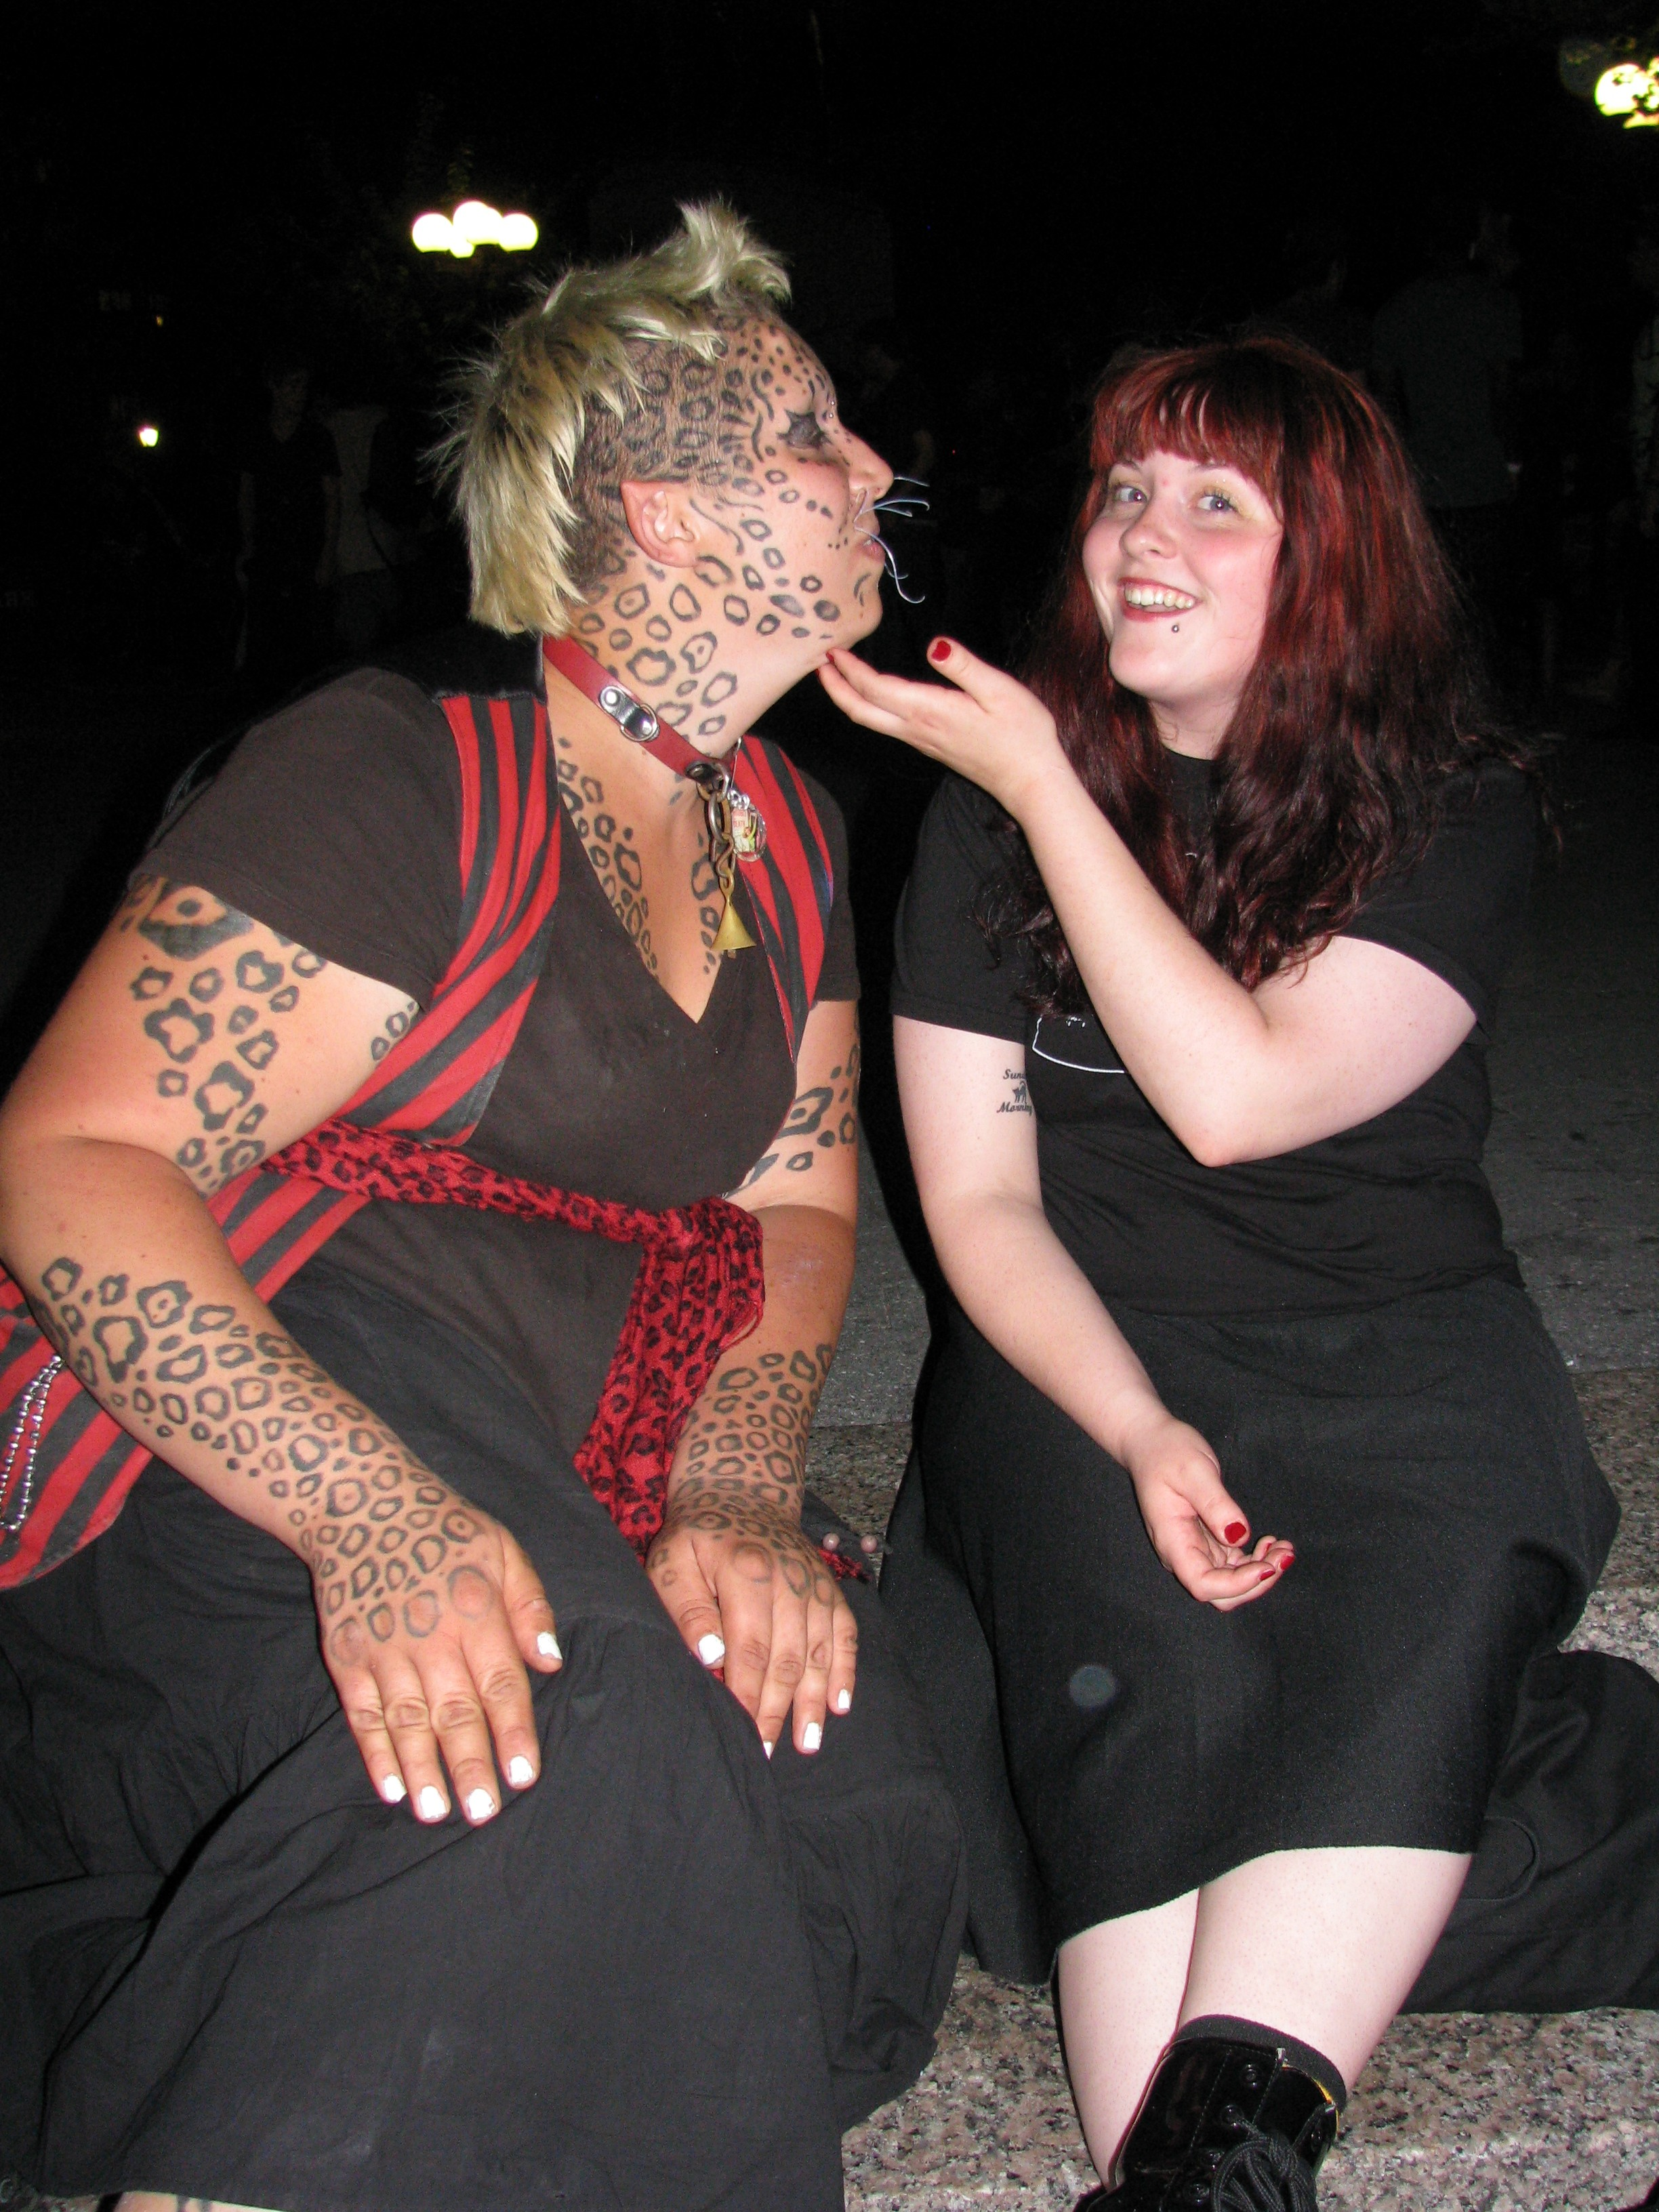 redhead scratching tattooed cat woman under chic